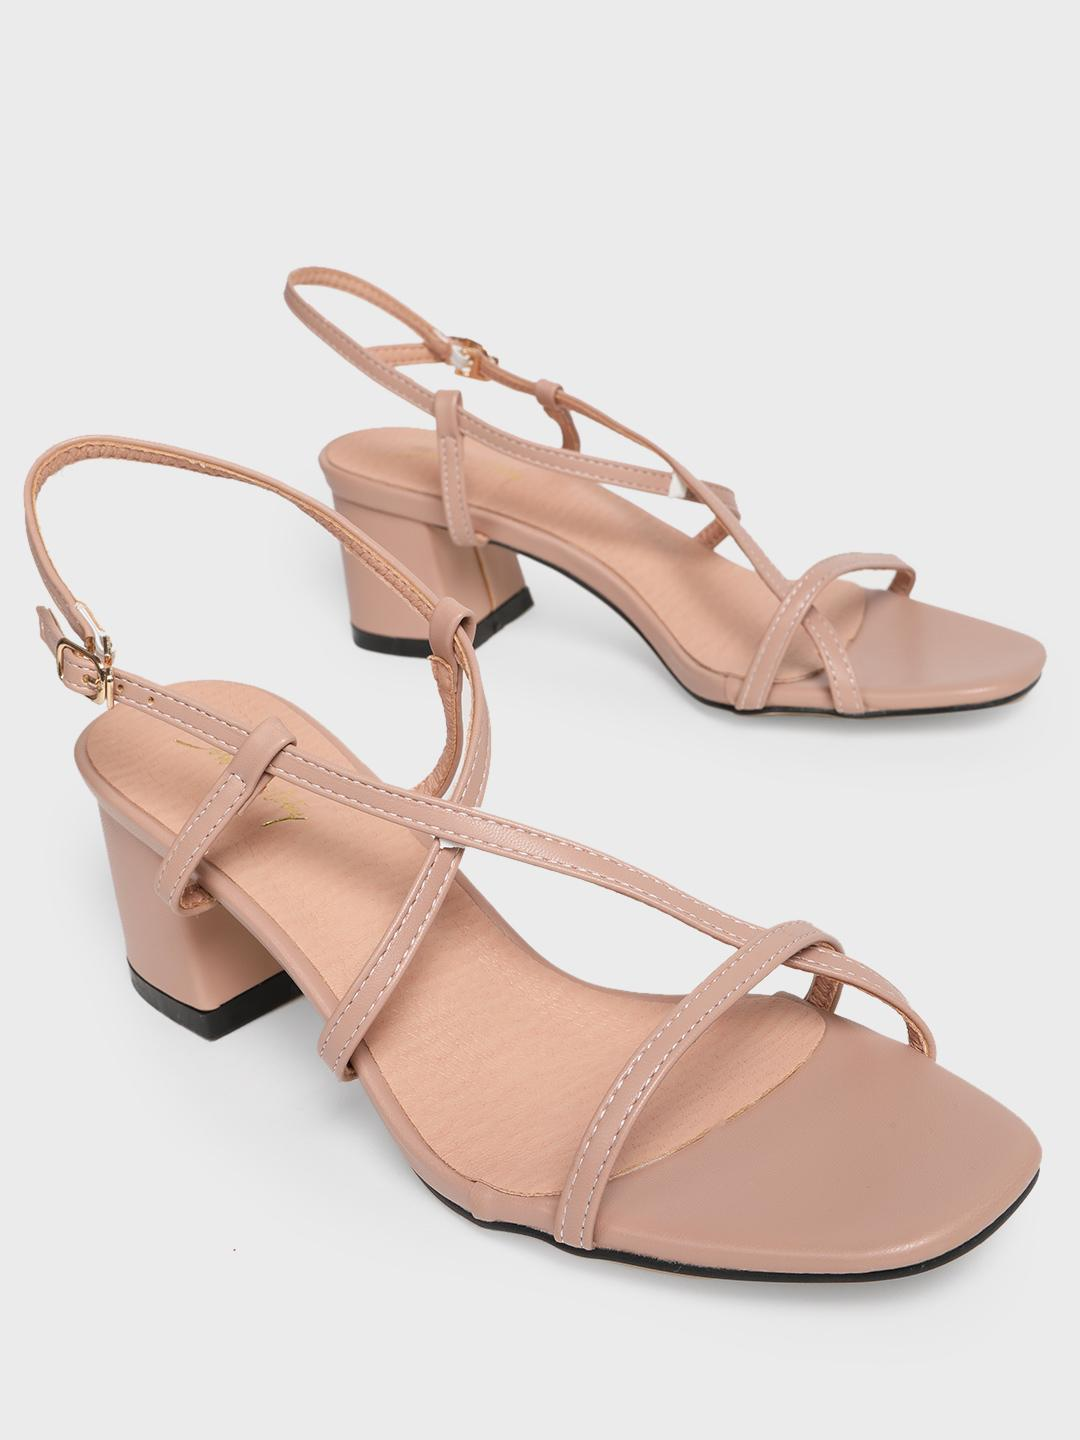 Sole Story Pink Strappy Block Heeled Sandals 1